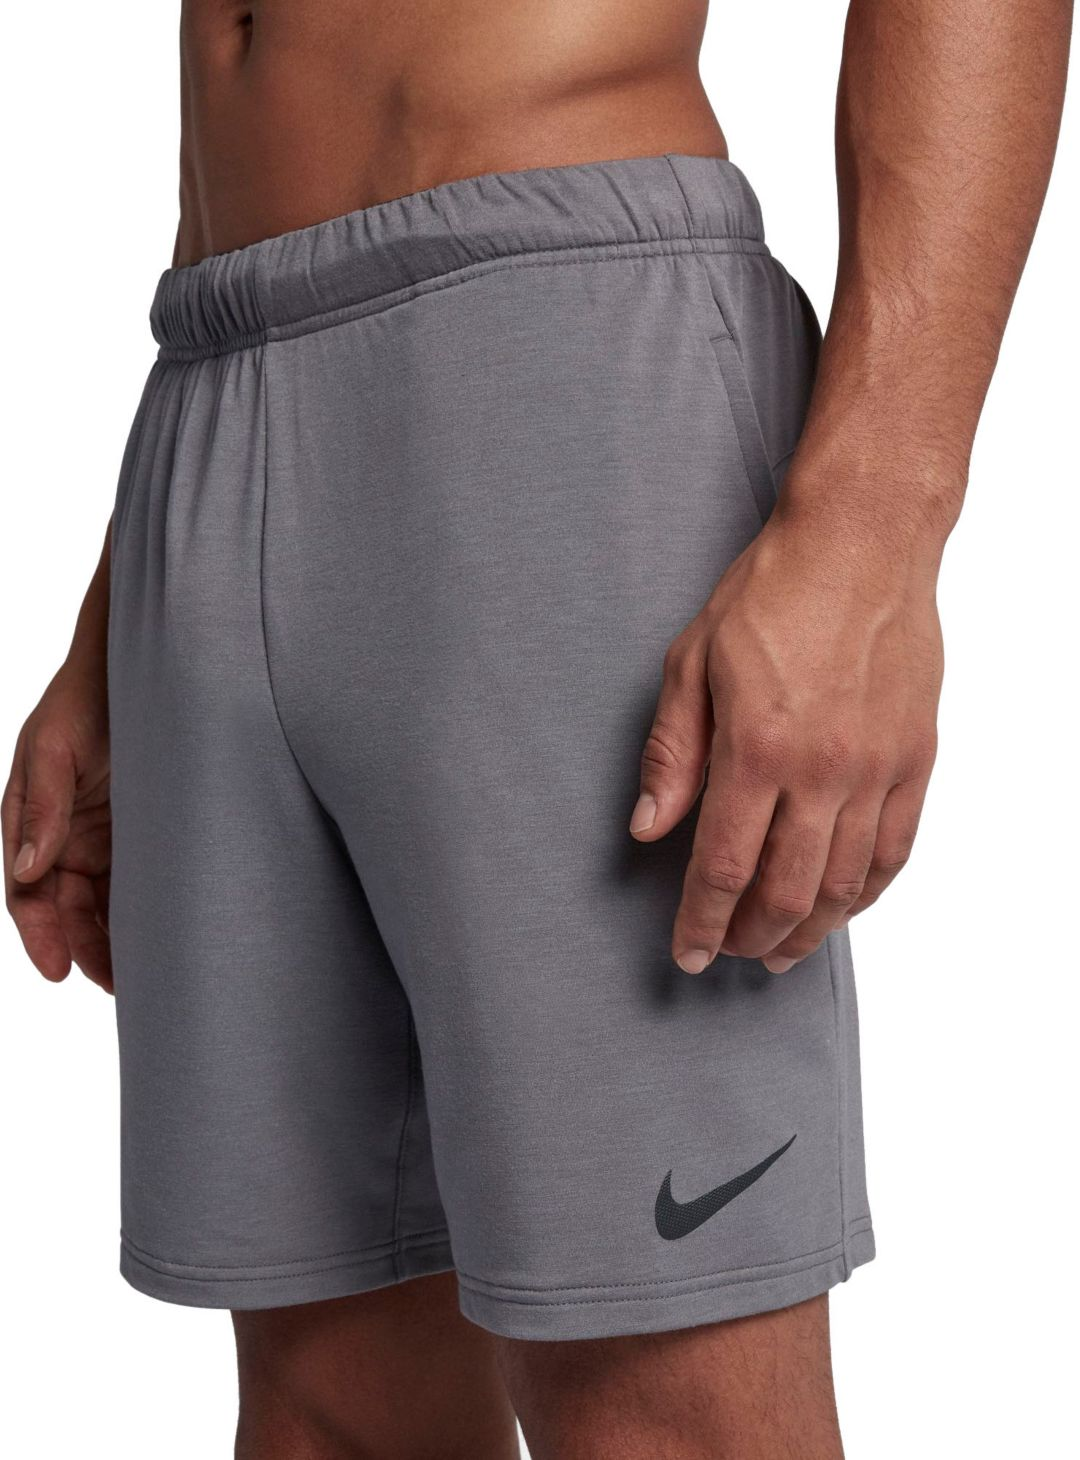 0491c2846 Nike Men's Dry Hyper Training Shorts | DICK'S Sporting Goods